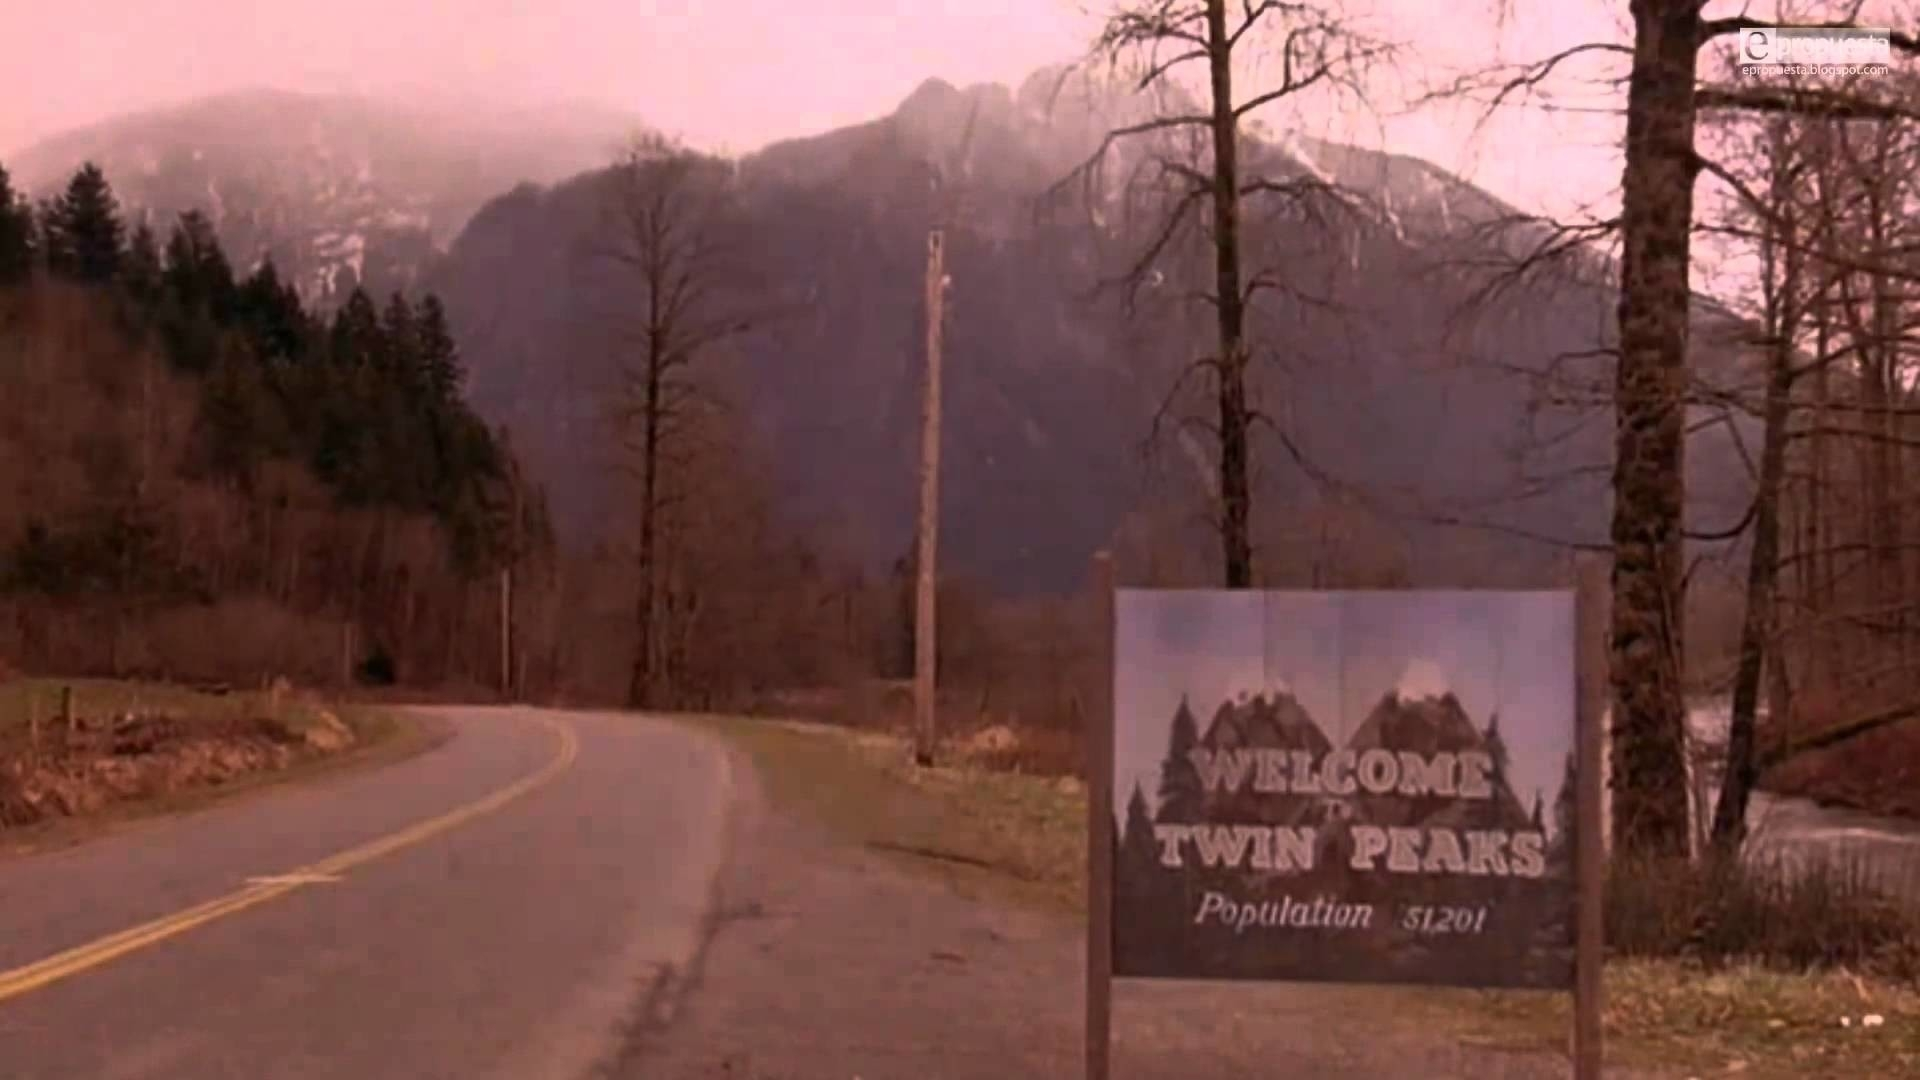 twin peaks wallpaper (73+ images)